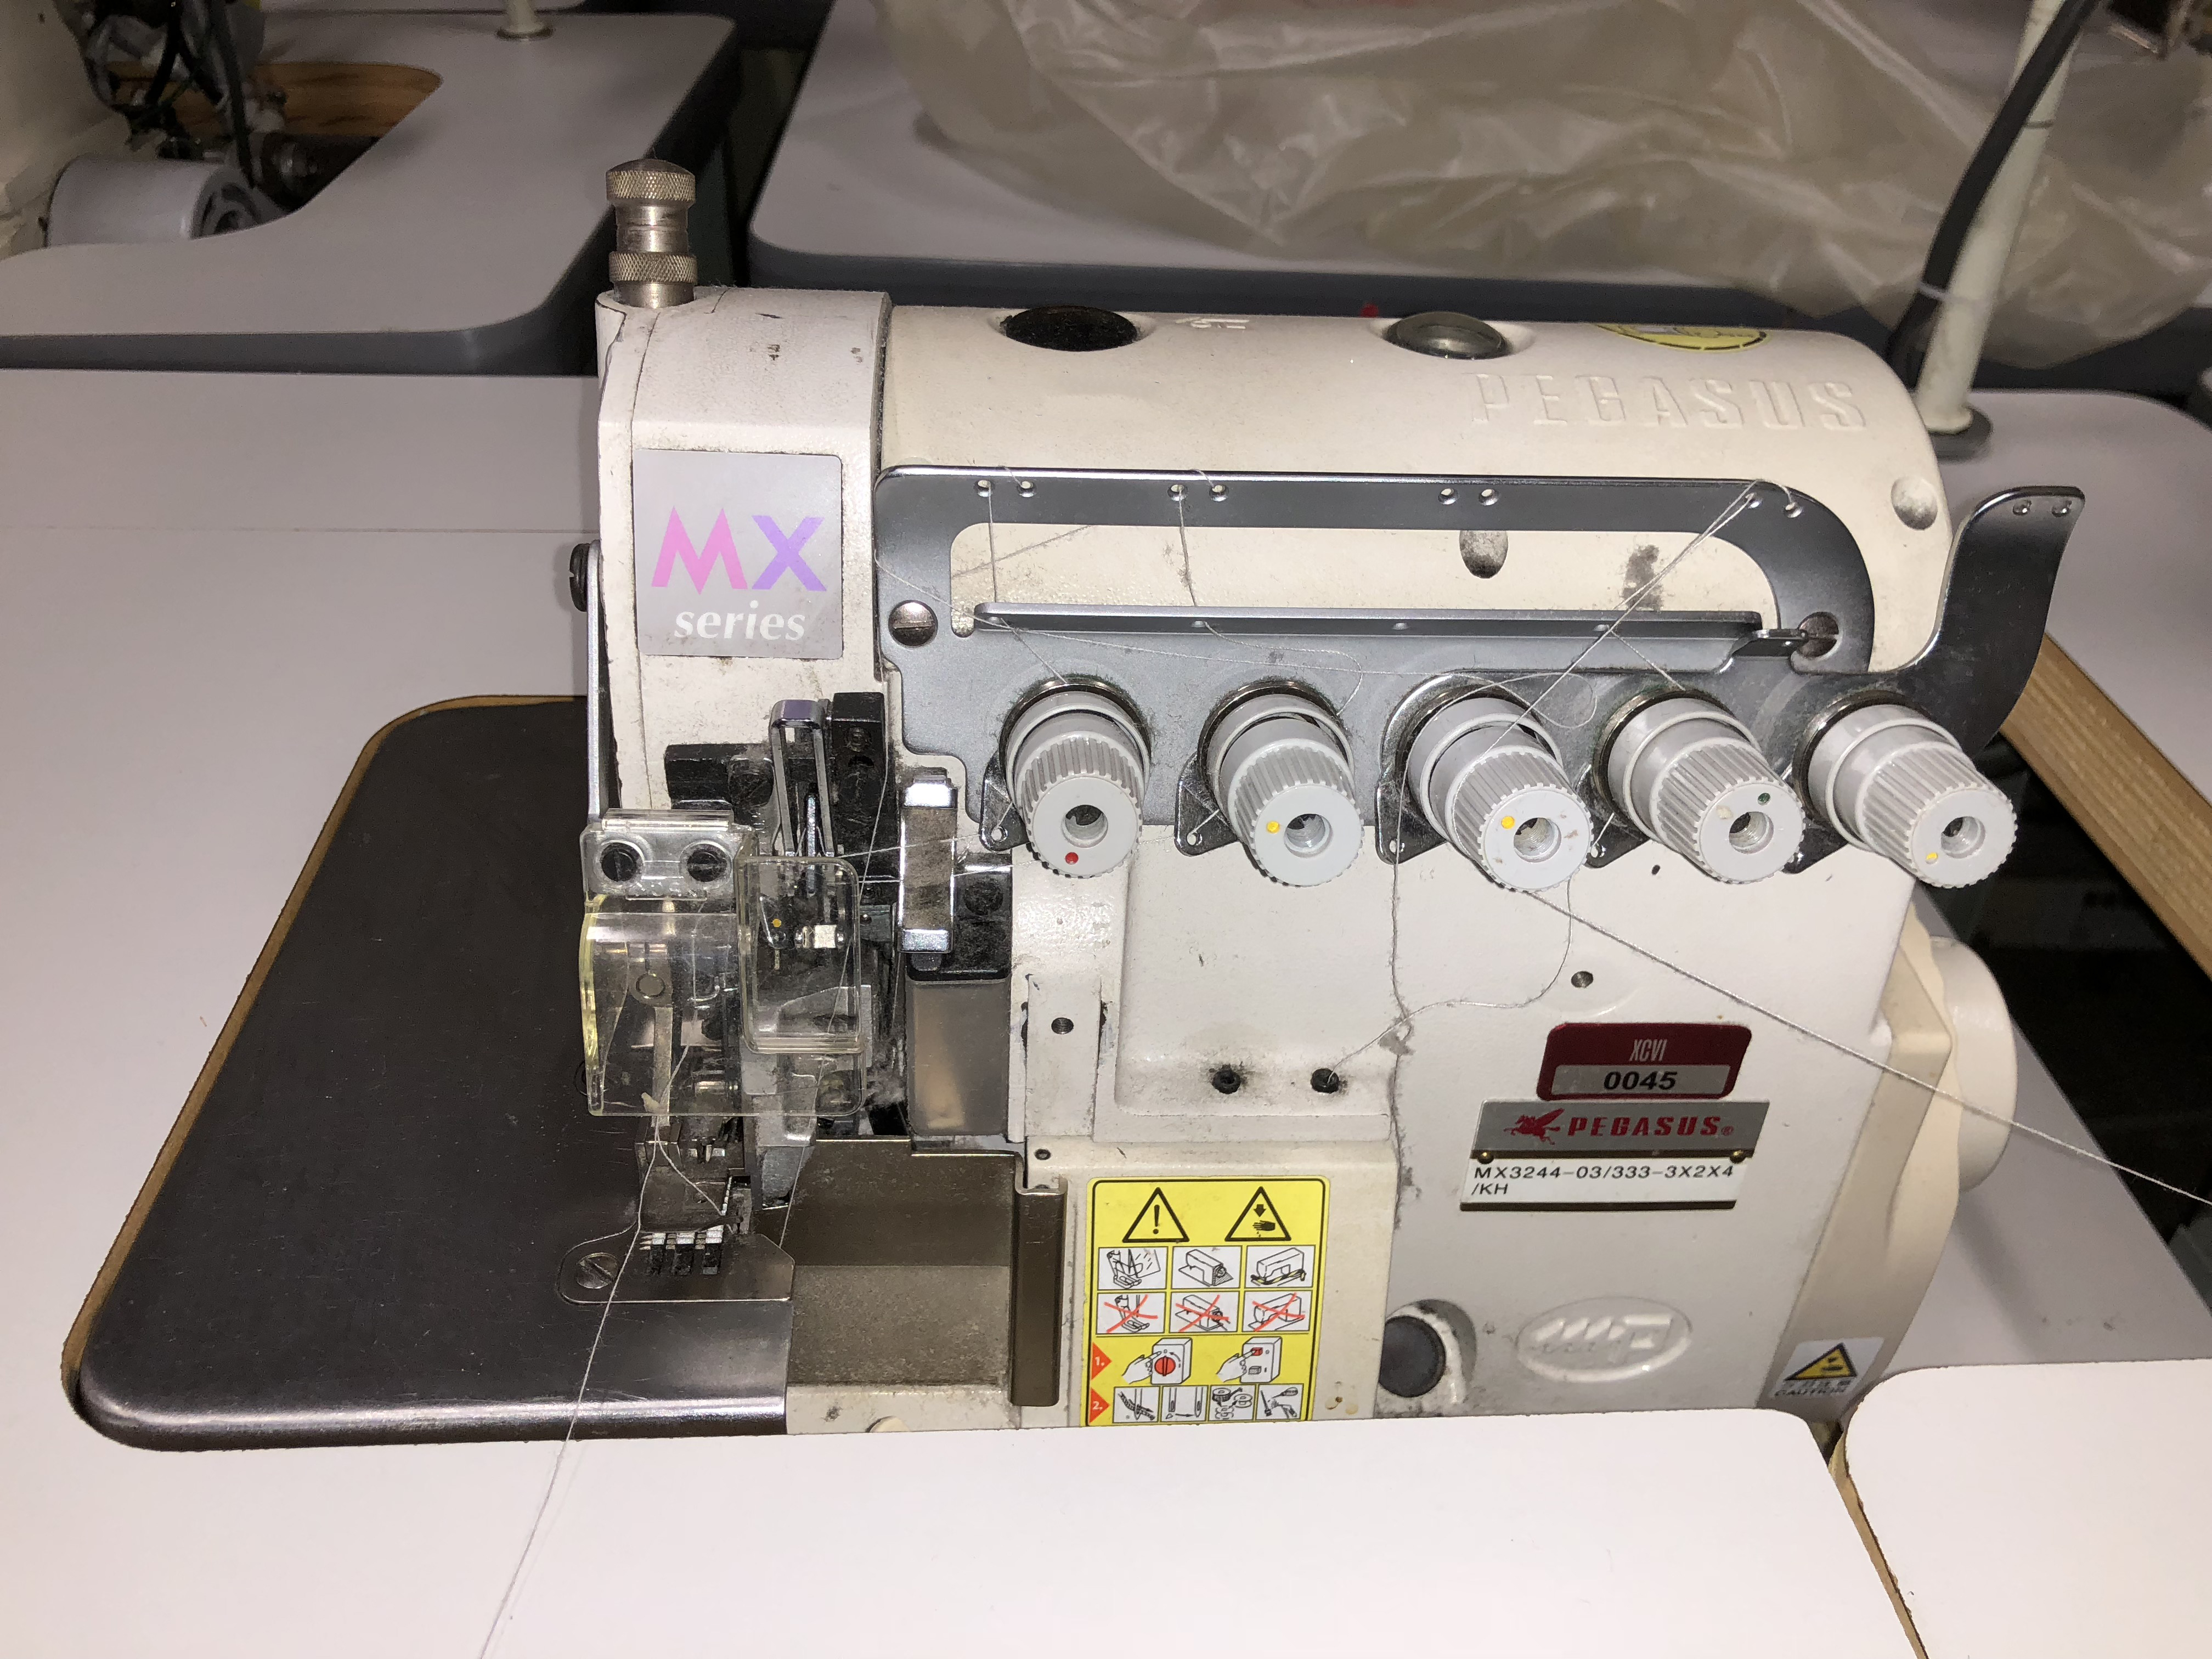 Pegasus MX3244-03/333 Overedger & safety stitch machine, overlock sewing machine